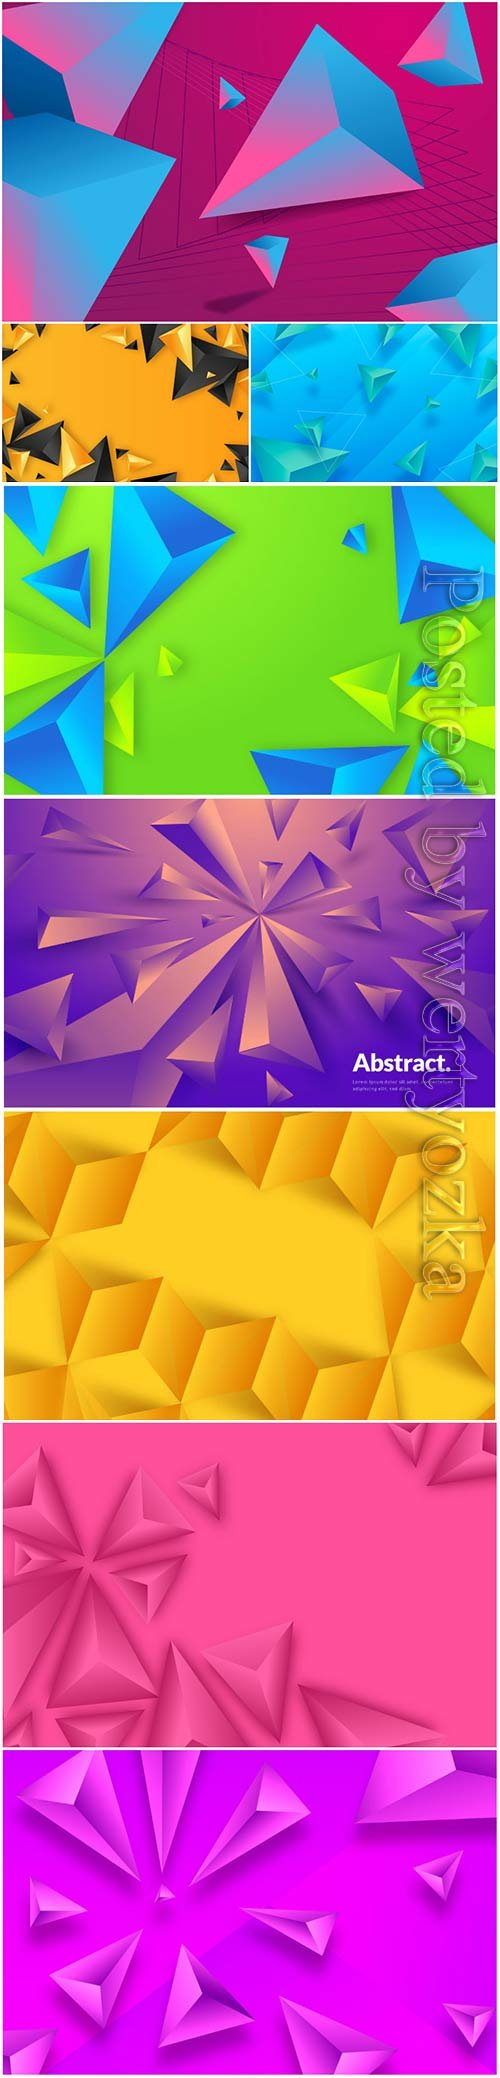 Abstract vector background, 3d models template